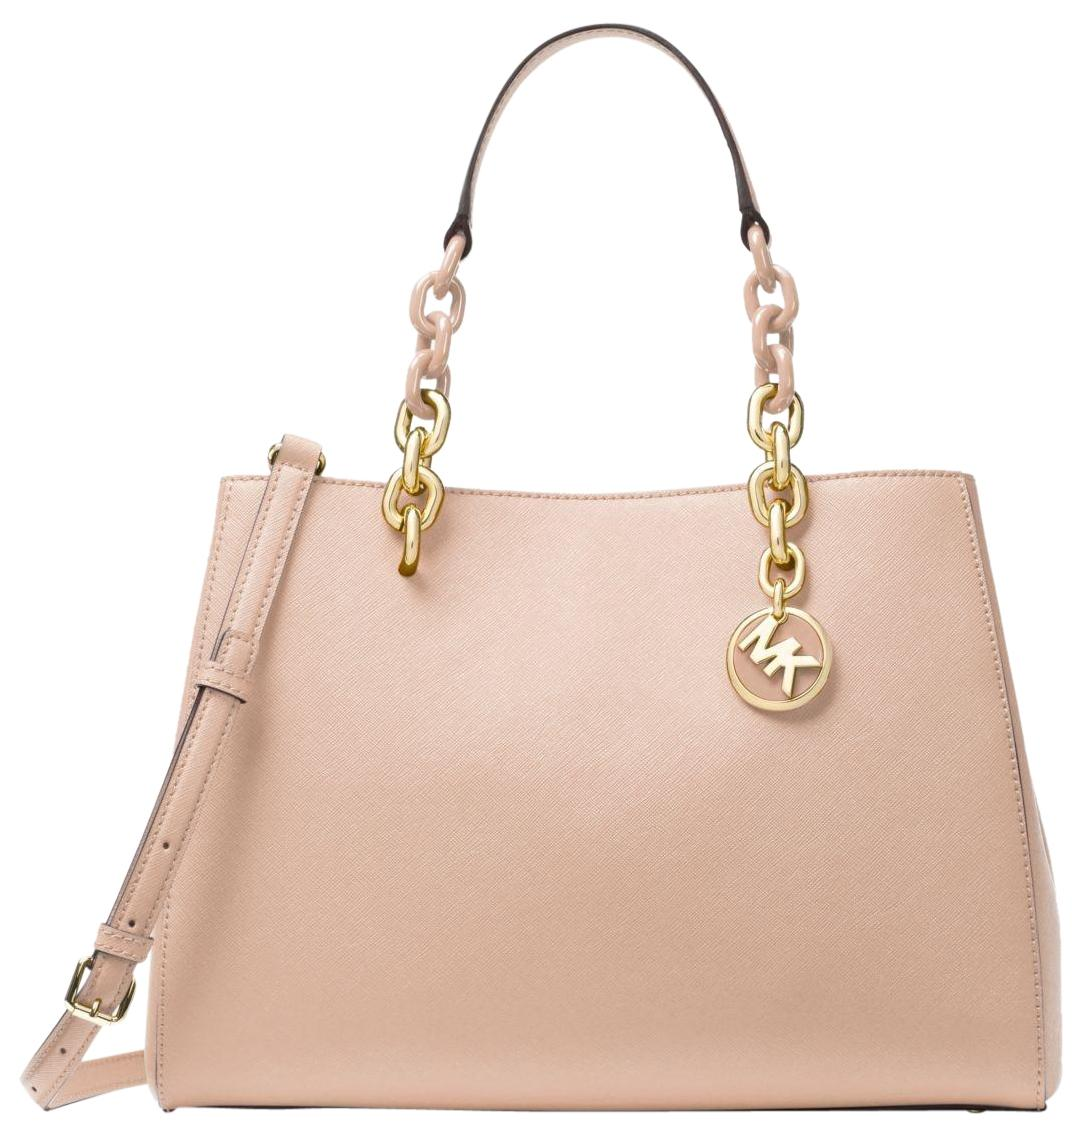 3ecff4554a51 ... cheap michael kors leather satchel in soft pink 46937 d5b3b